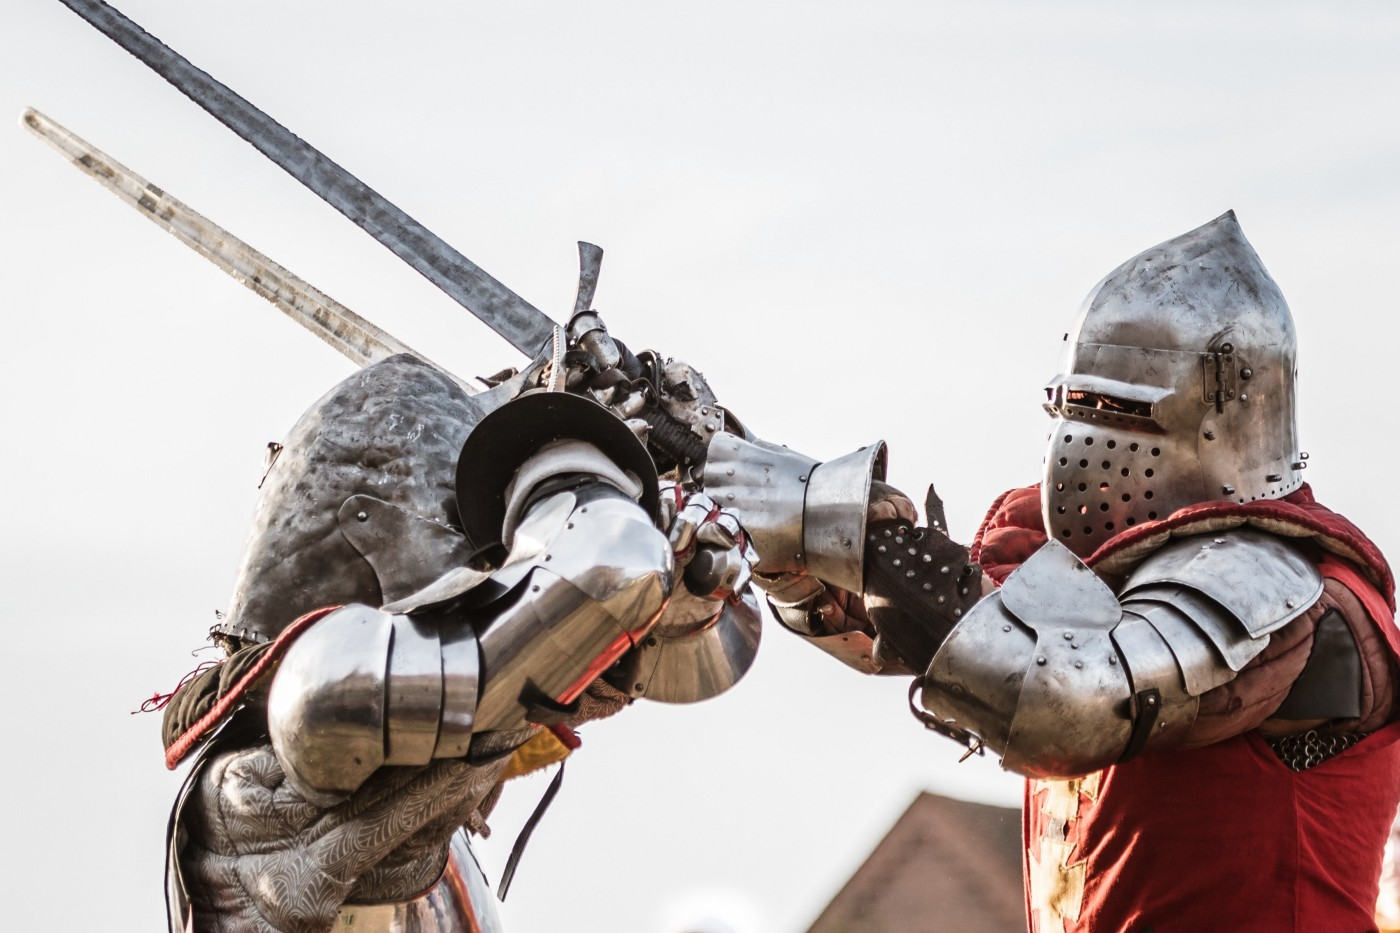 Two knights in plate armor and some chainmail battle in close quarters with broadswords.